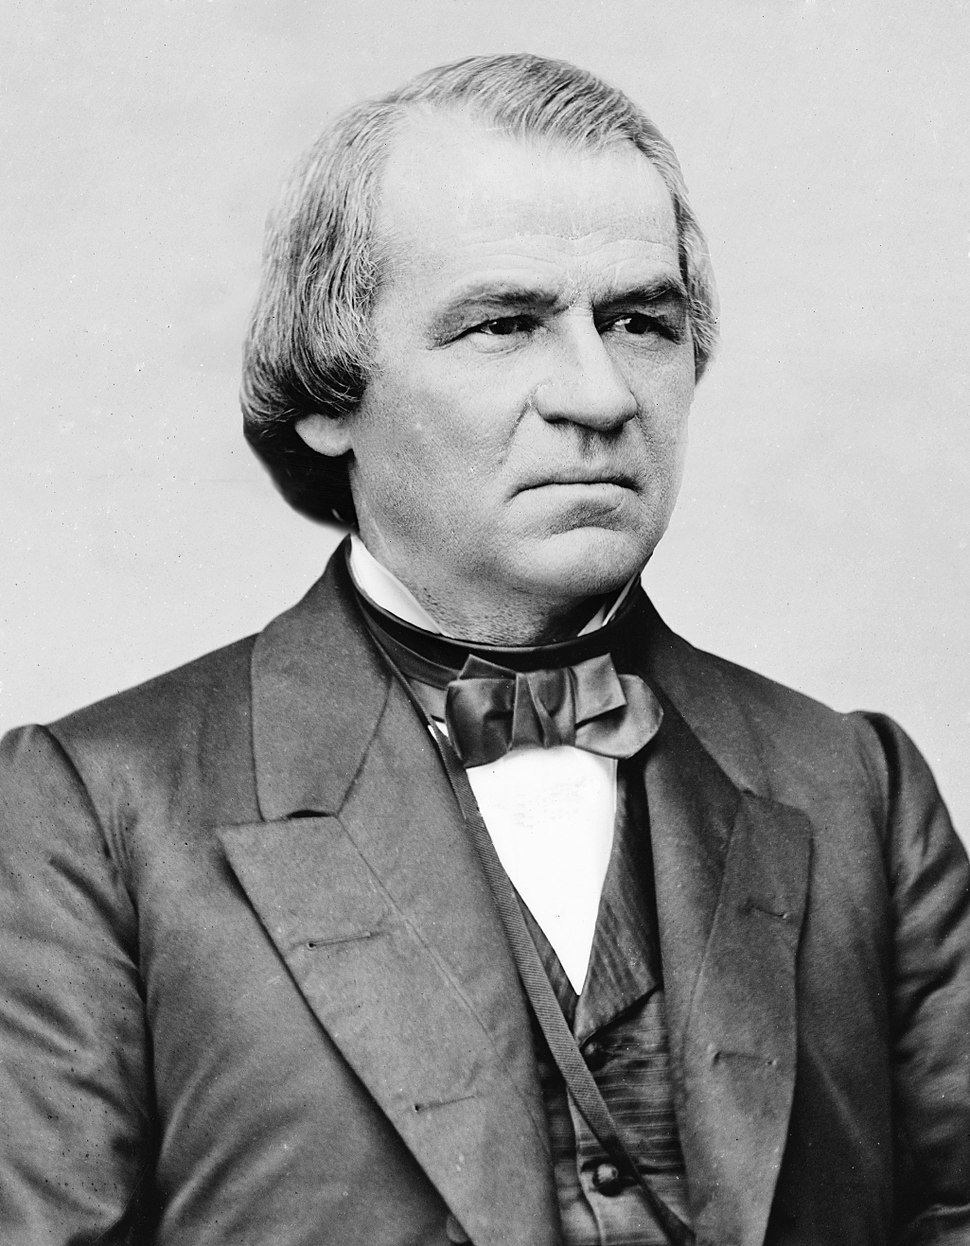 Andrew Johnson photo portrait head and shoulders, c1870-1880-Edit1